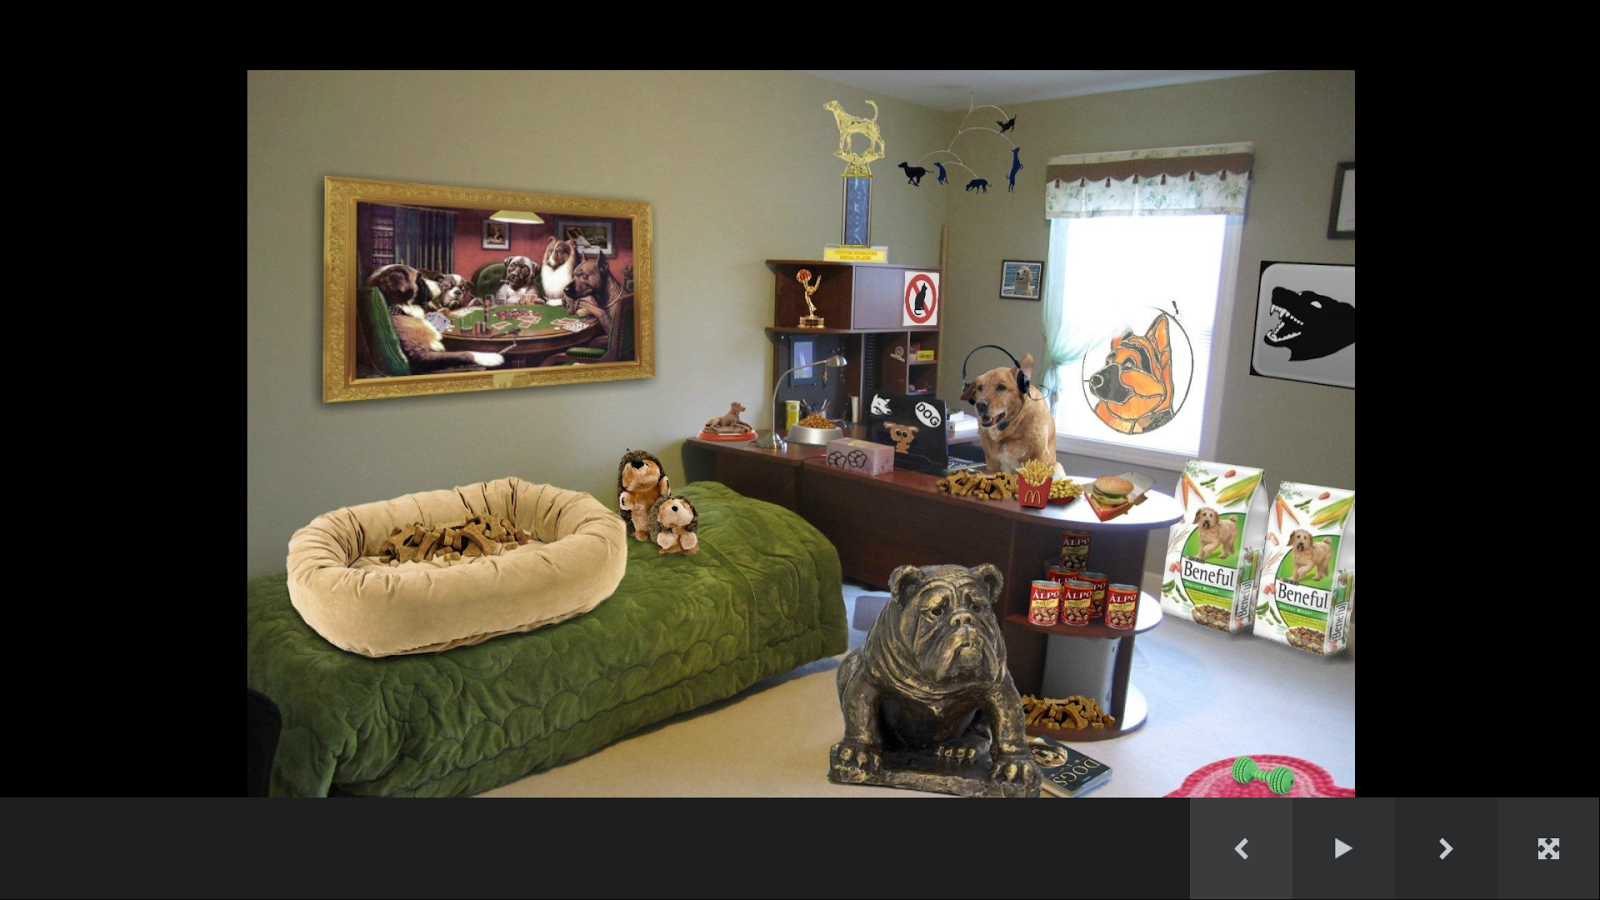 Dog Room Decor Android Apps On Google Play: bedroom design app